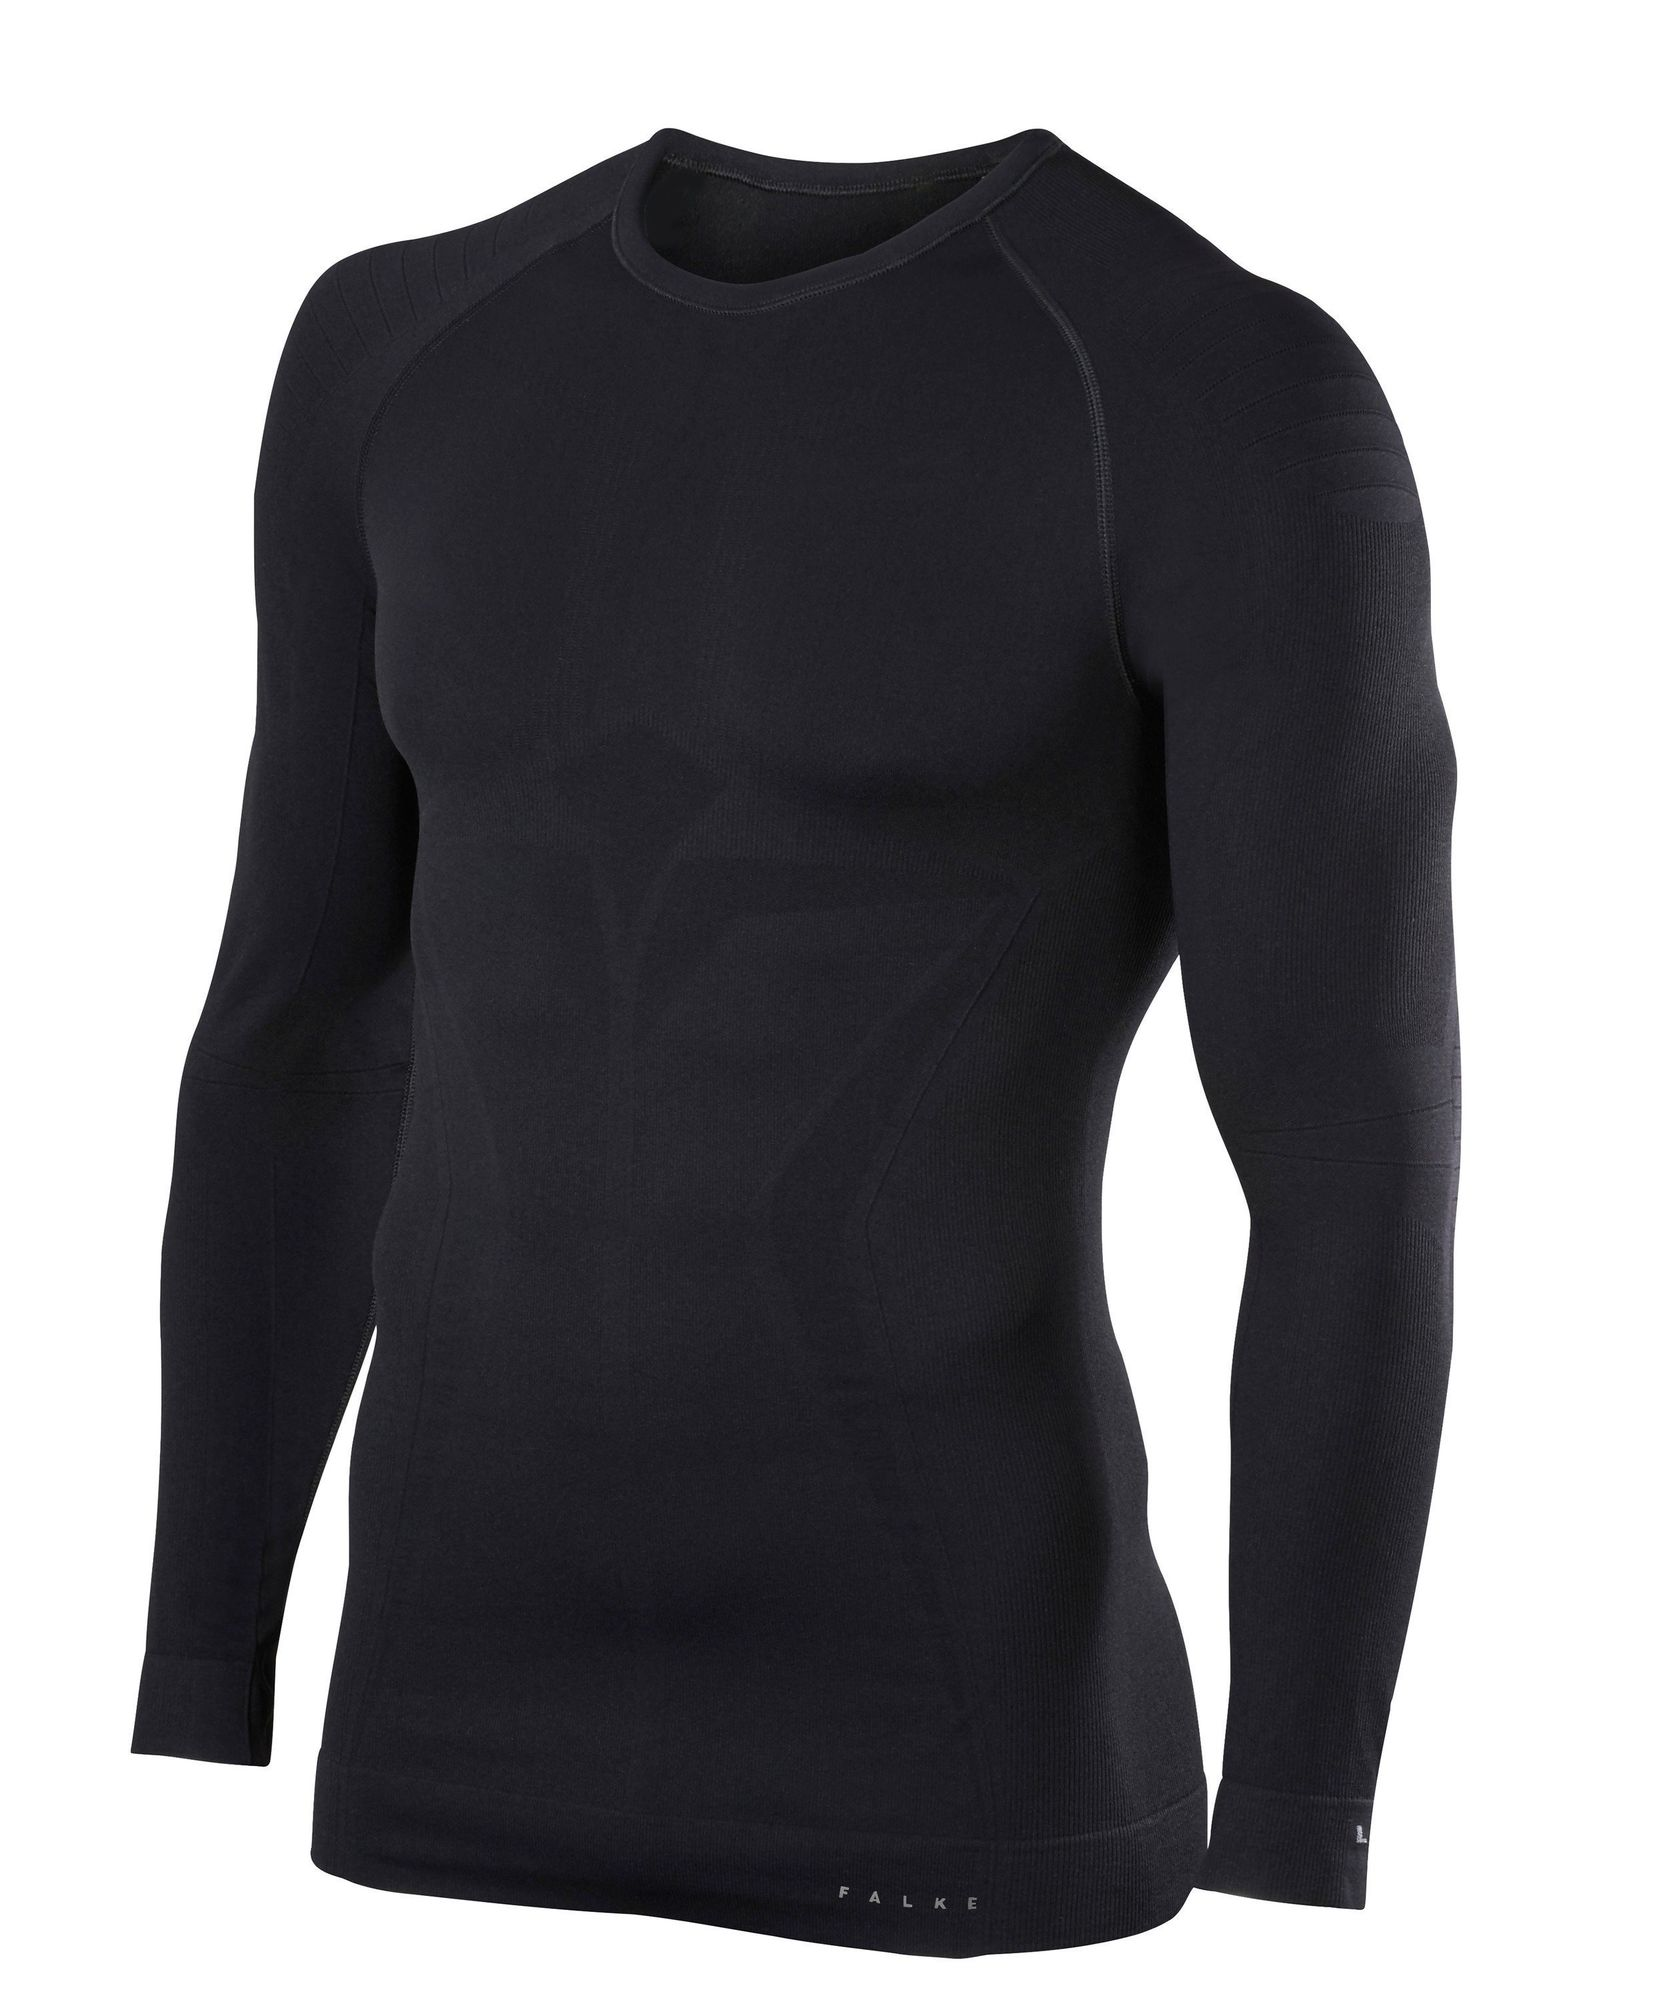 Falke Langarmshirt Maximum Warm (Schwarz)